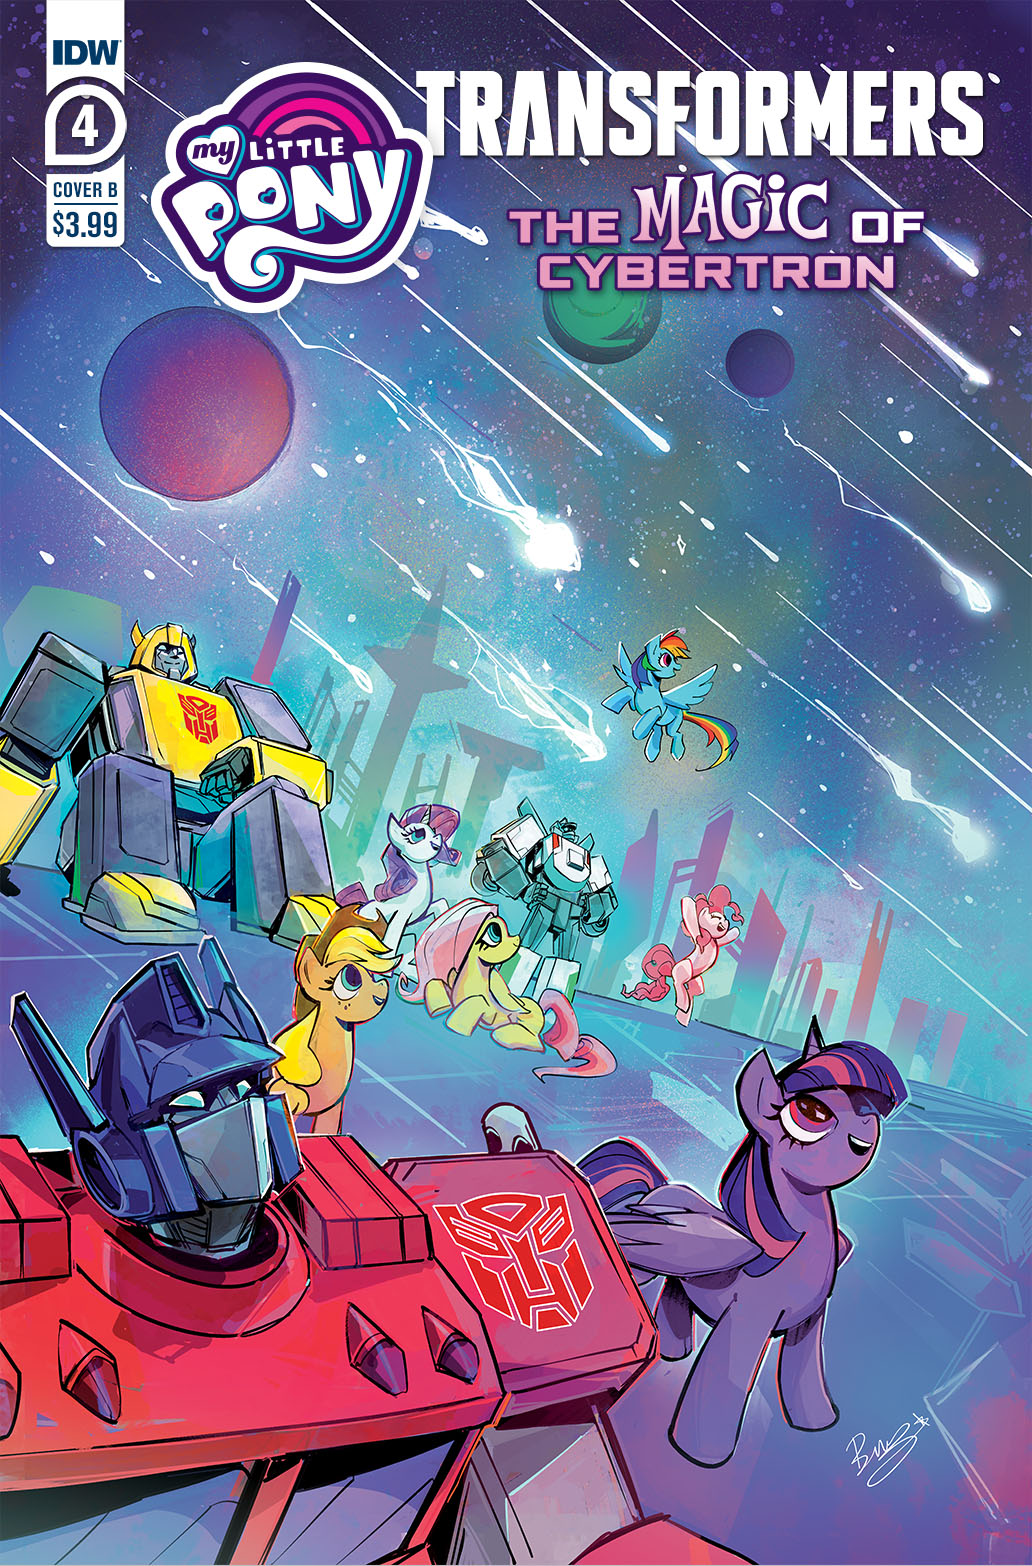 MLP_TF04-coverB-copy IDW Publishing July 2021 Solicitations